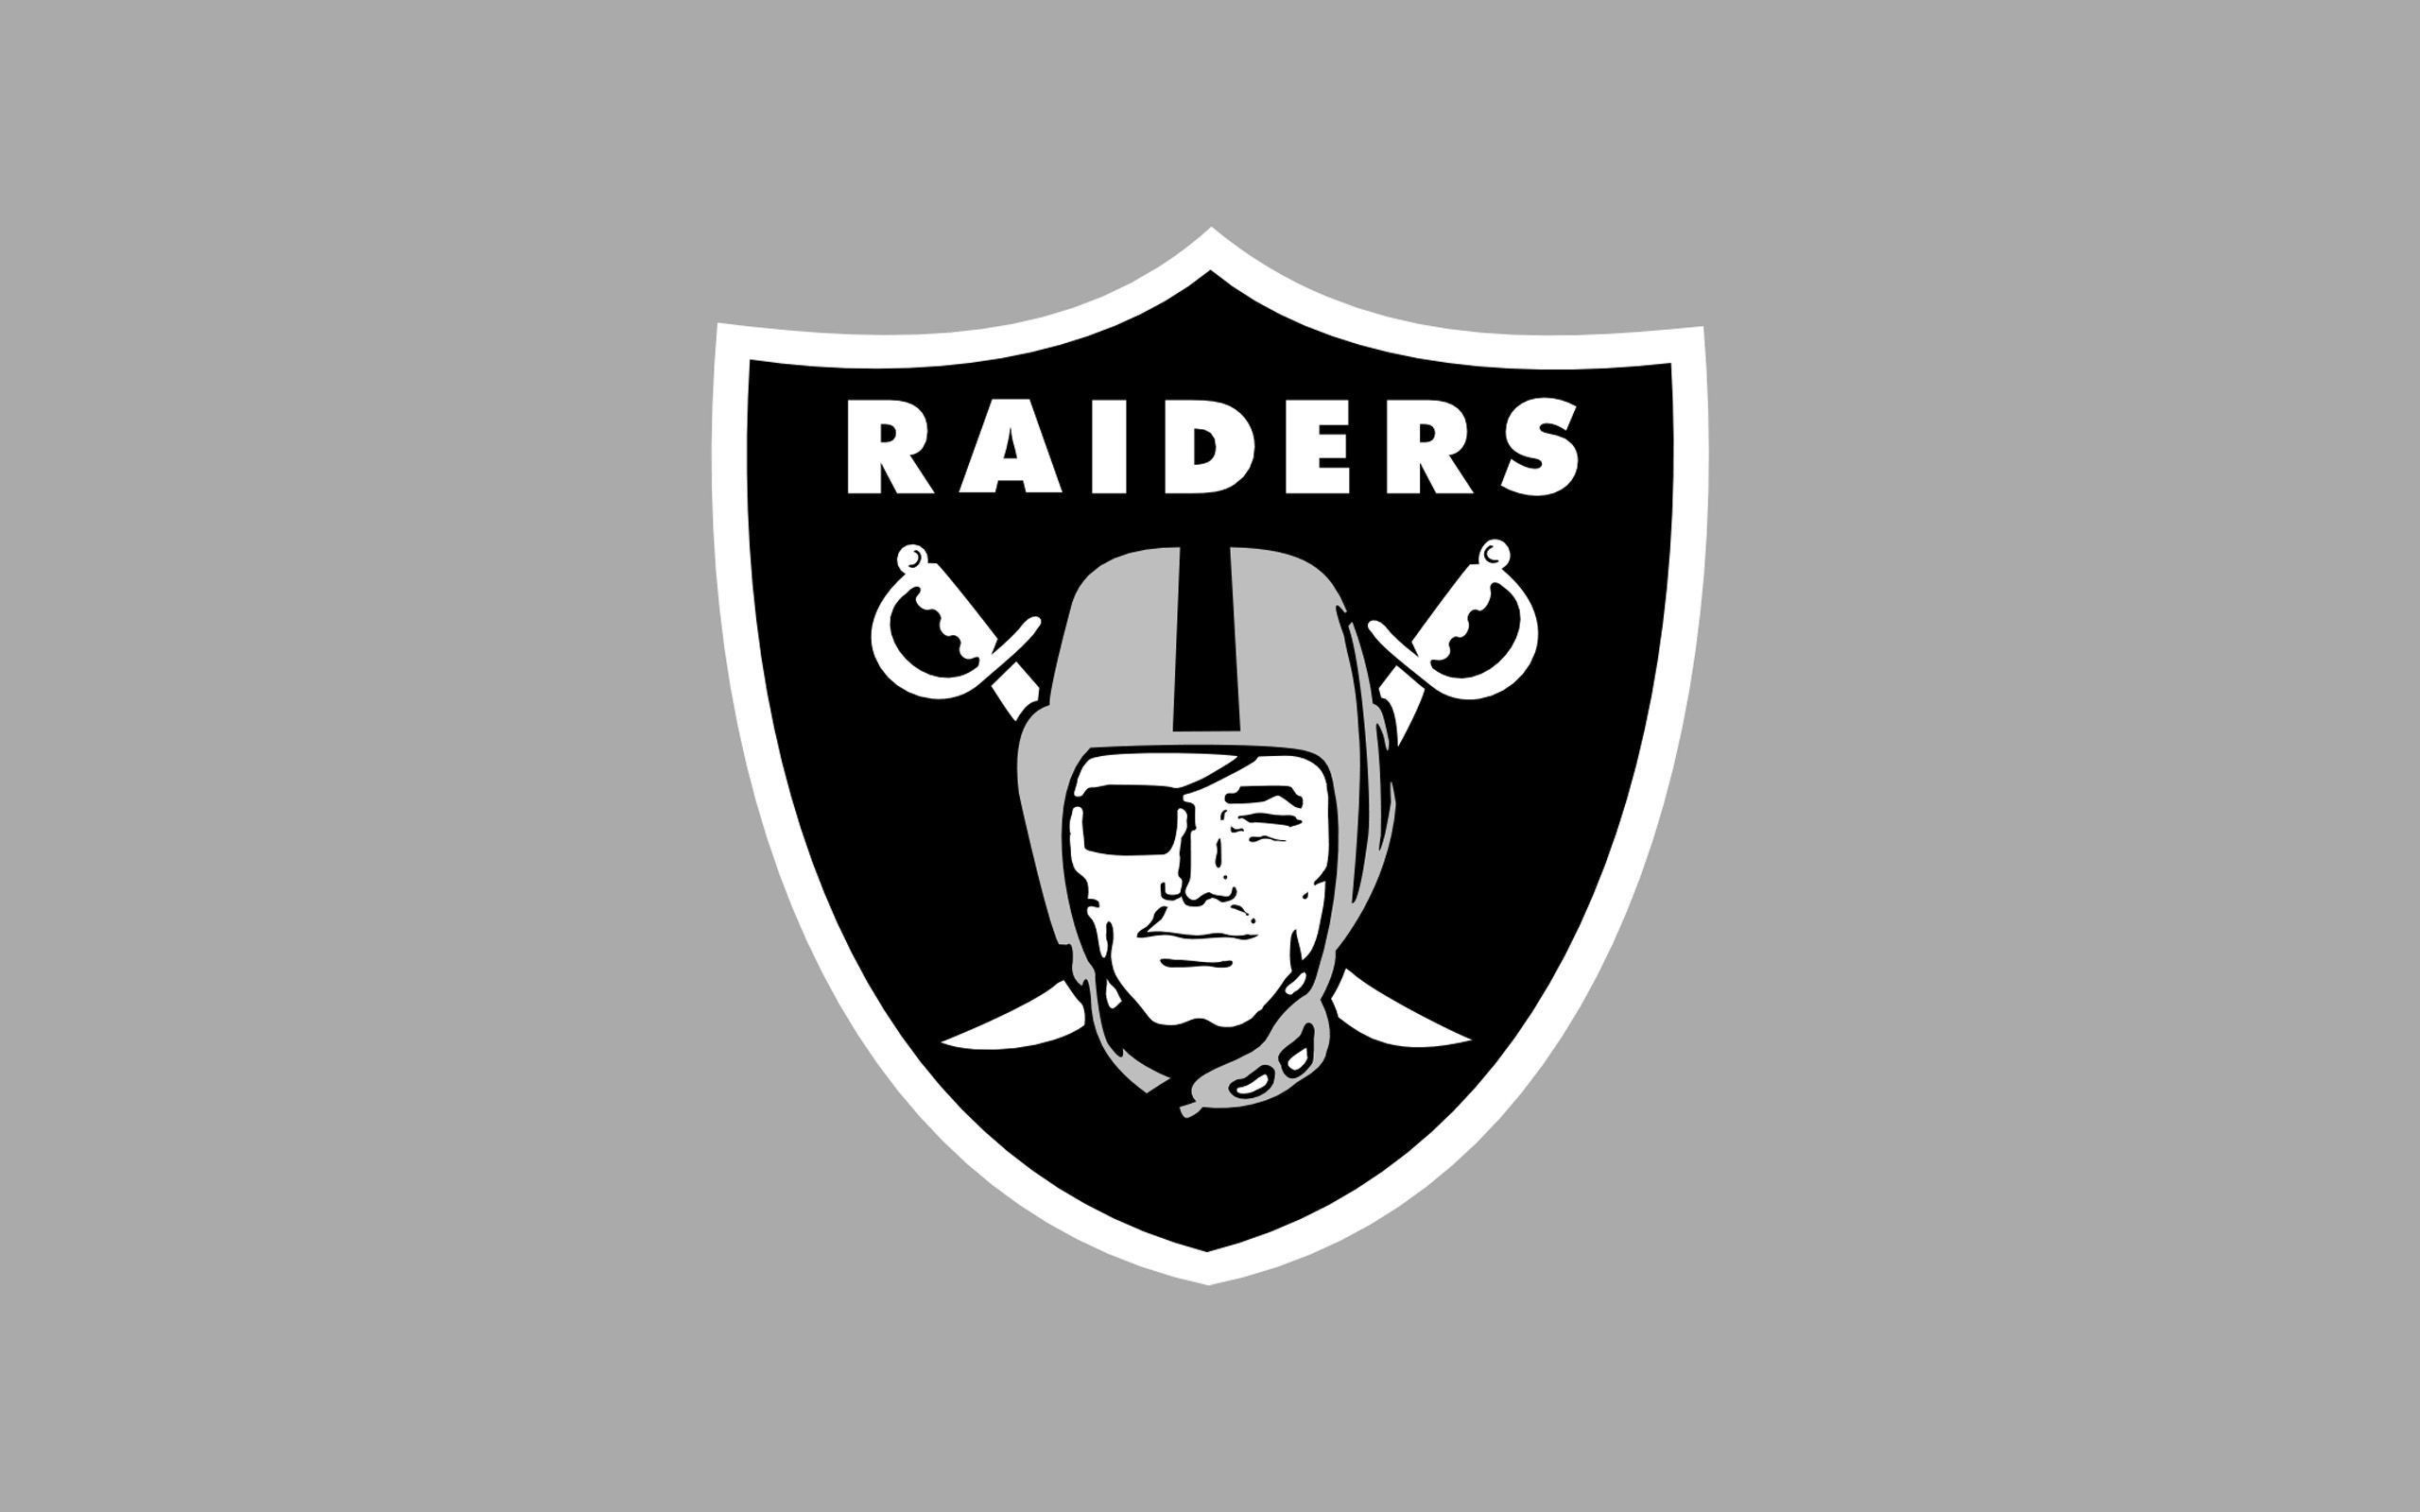 Oakland Raiders Wallpaper Background (71+ images).